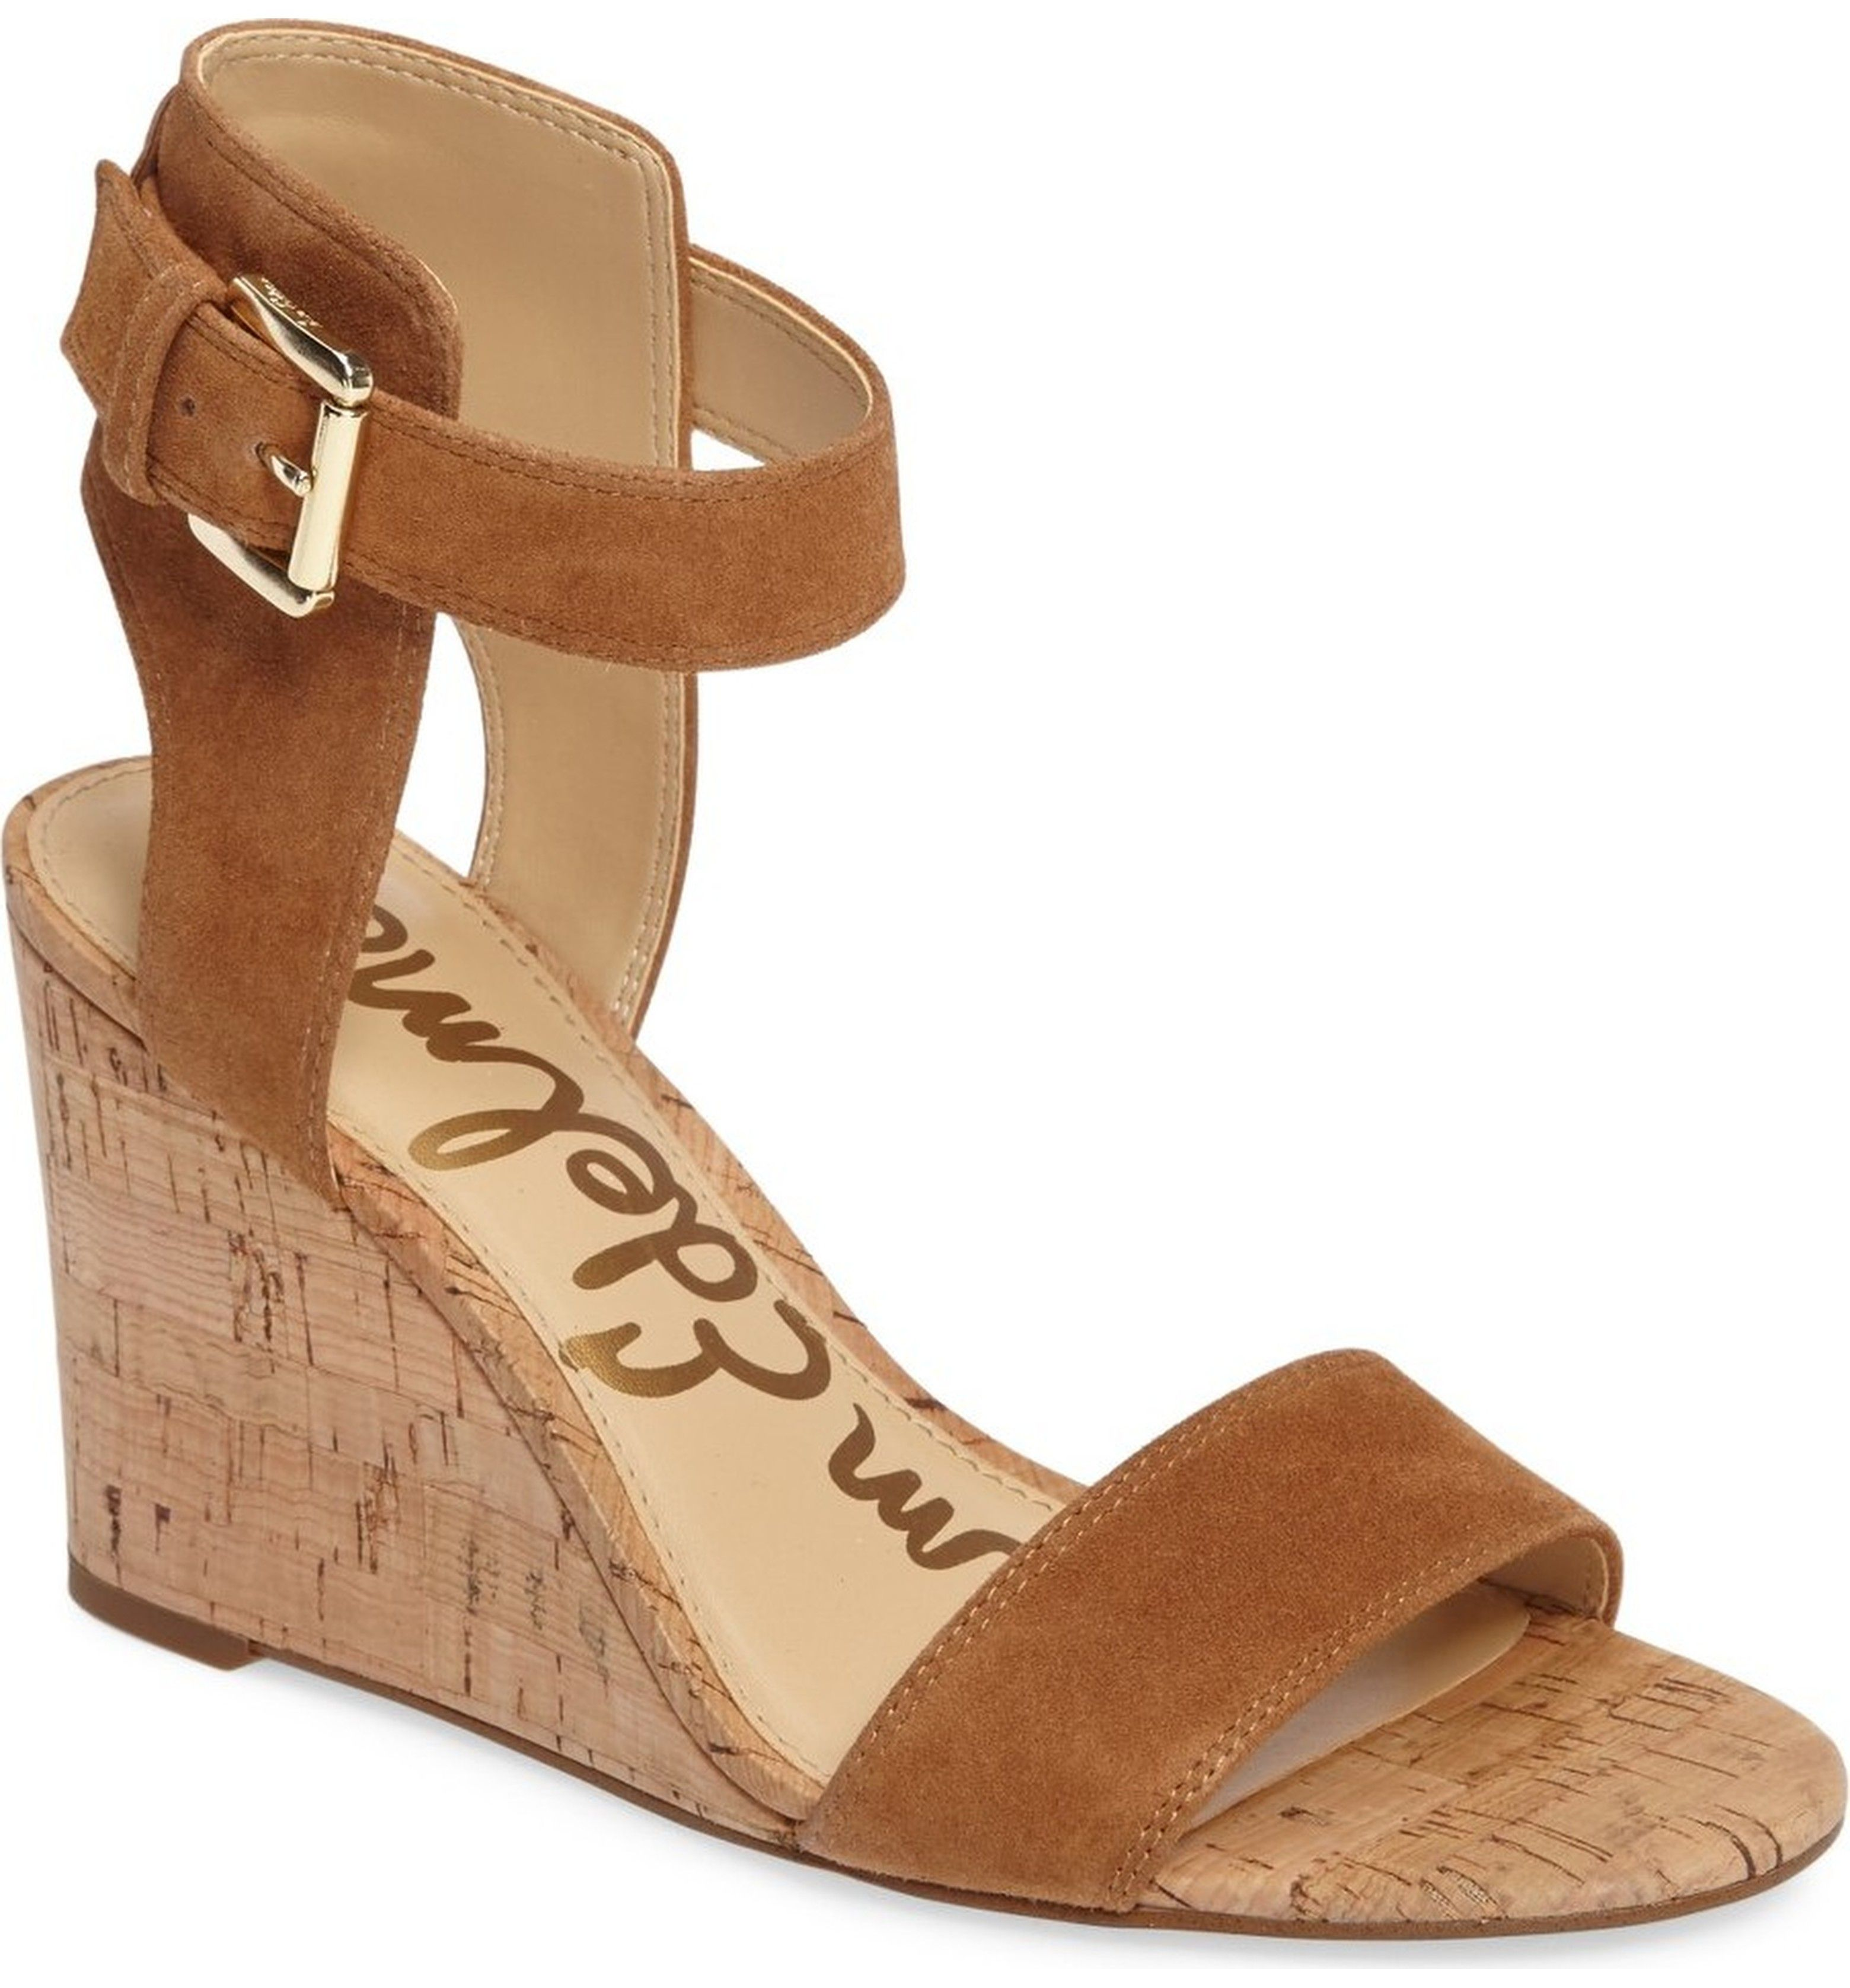 Main Image Sam Edelman Willow Strappy Wedge Sandal